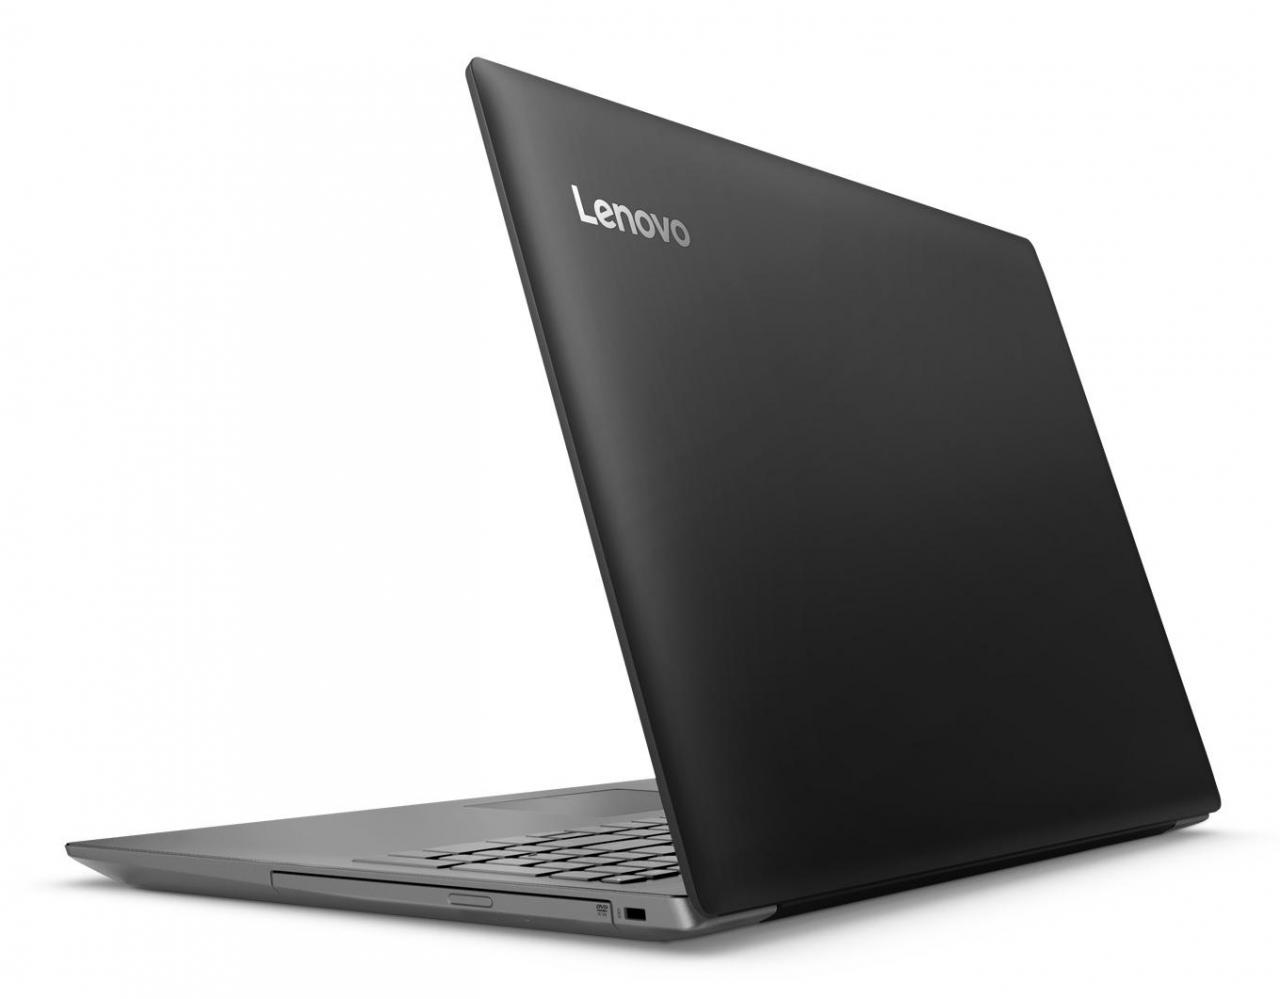 Lenovo IdeaPad 320-15ABR Specs and Details